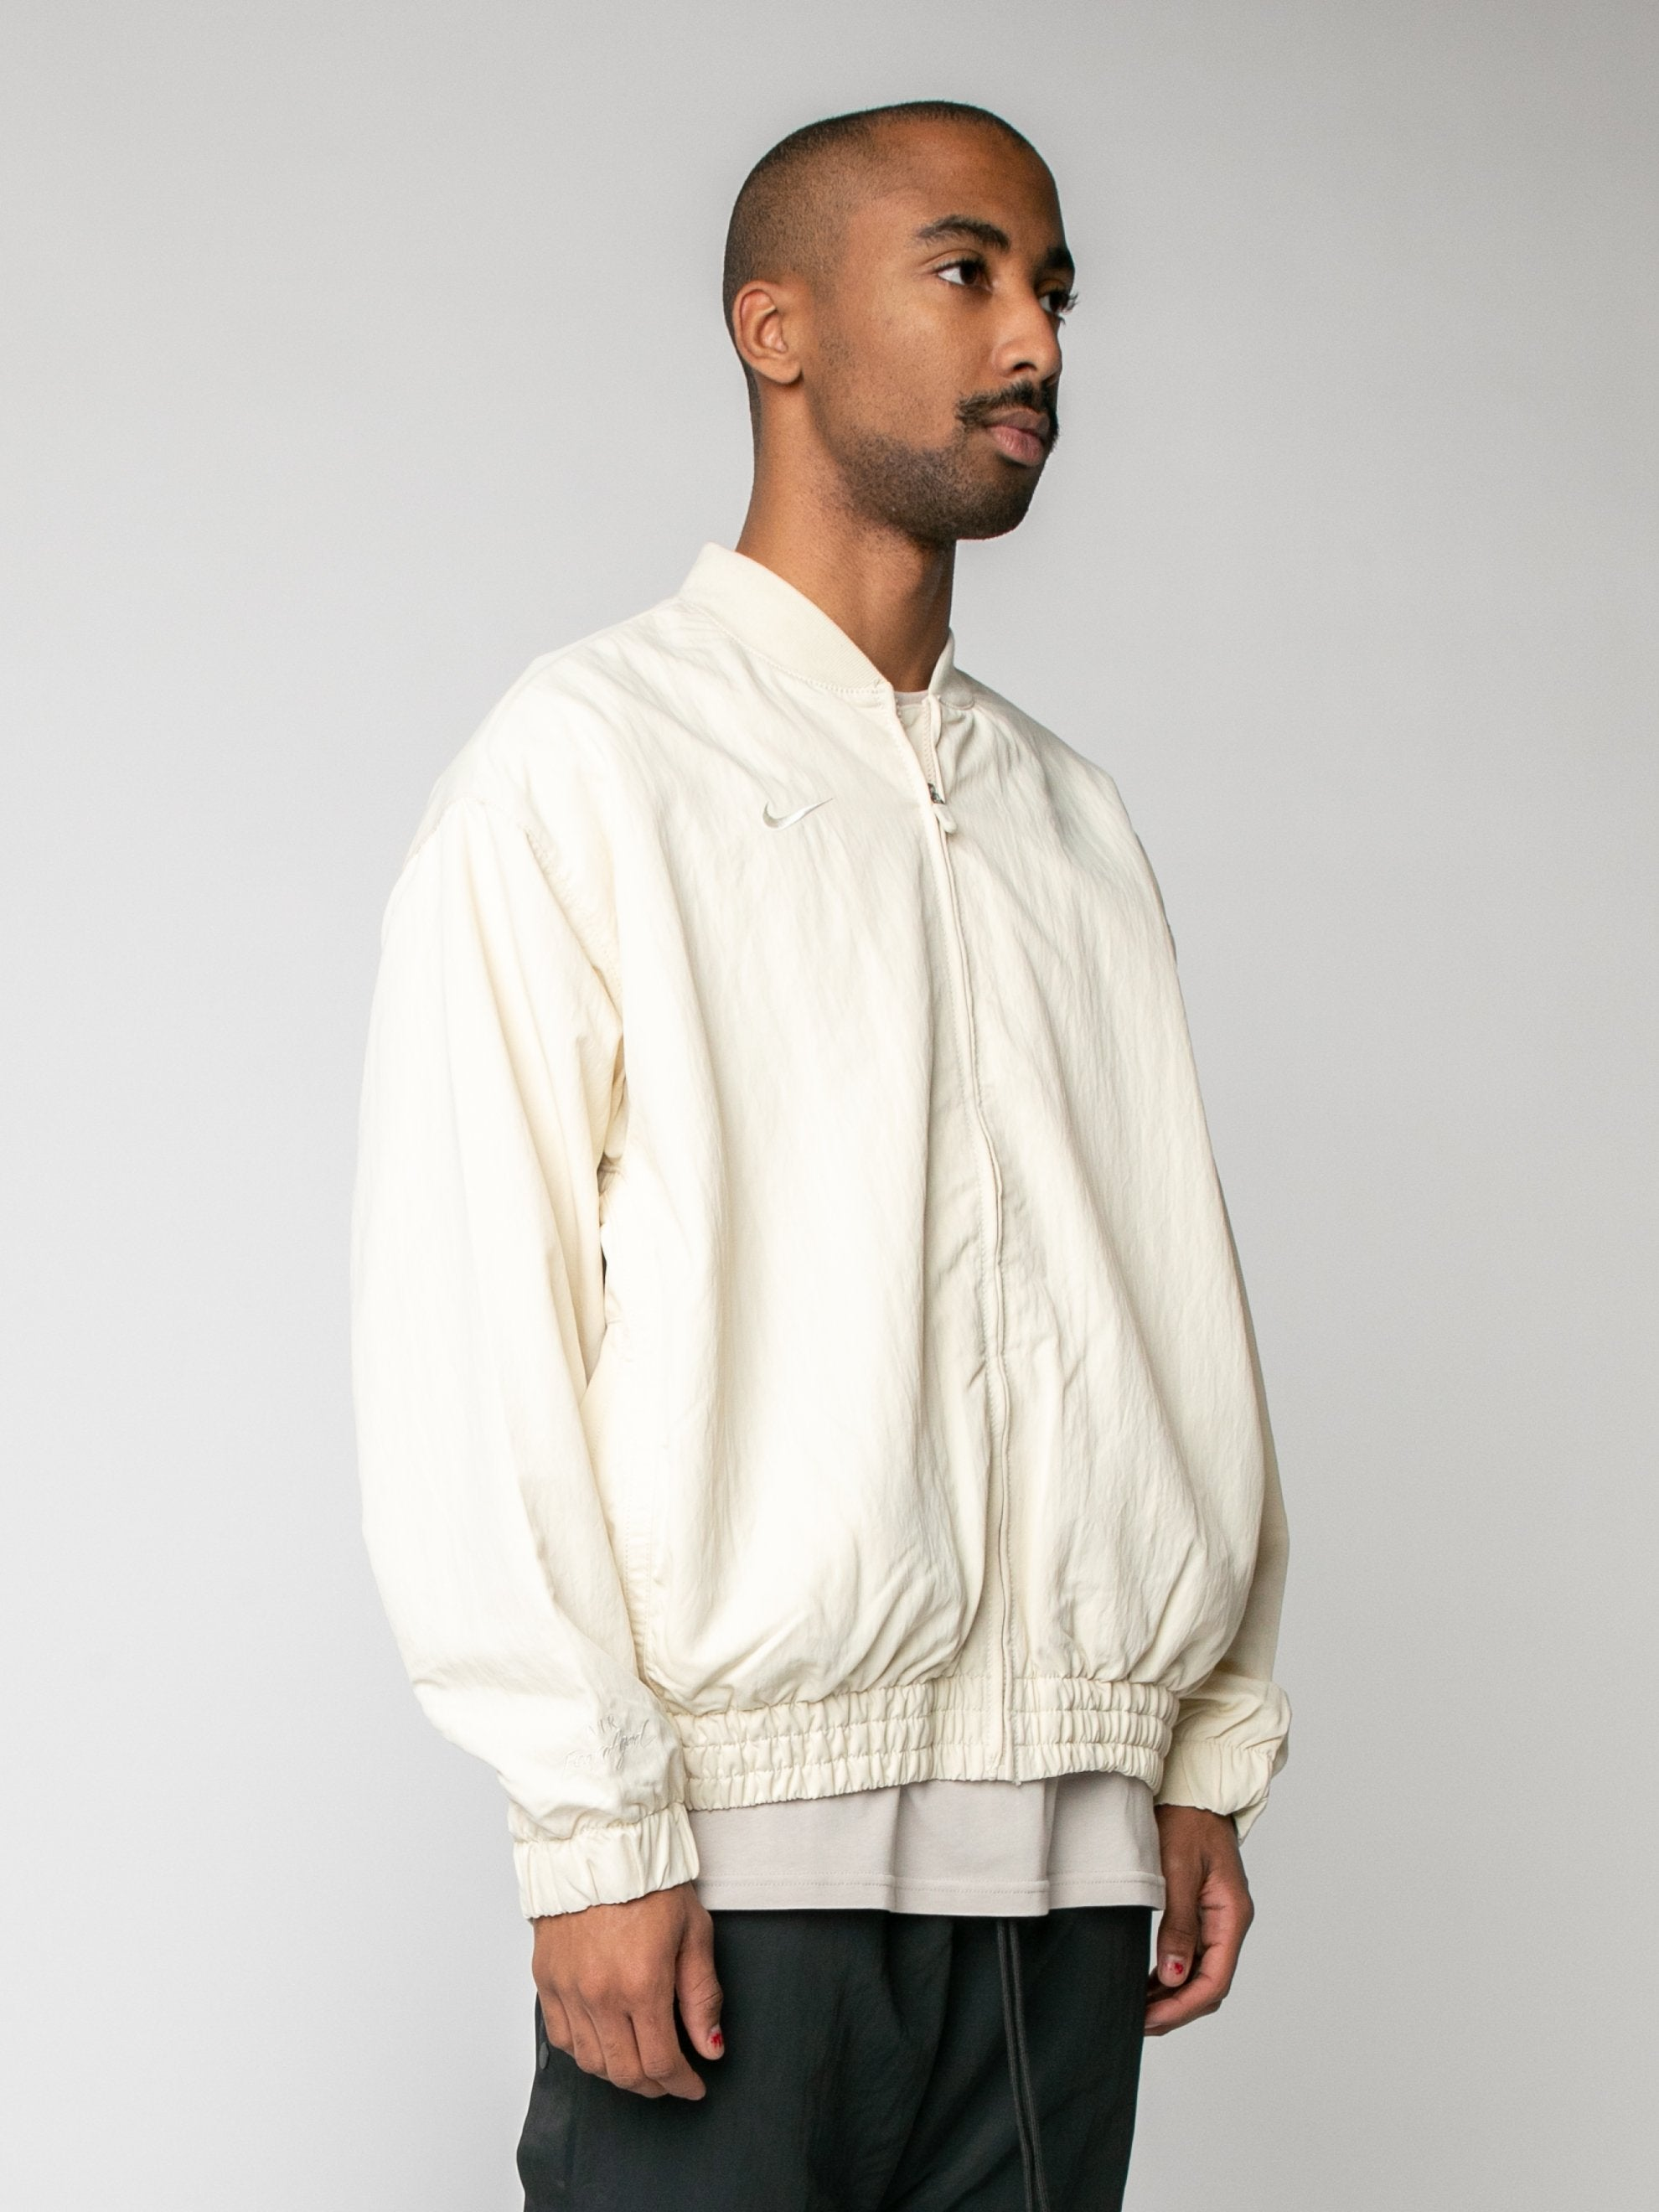 Light Cream Nike x Fear of God Basketball Jacket 4